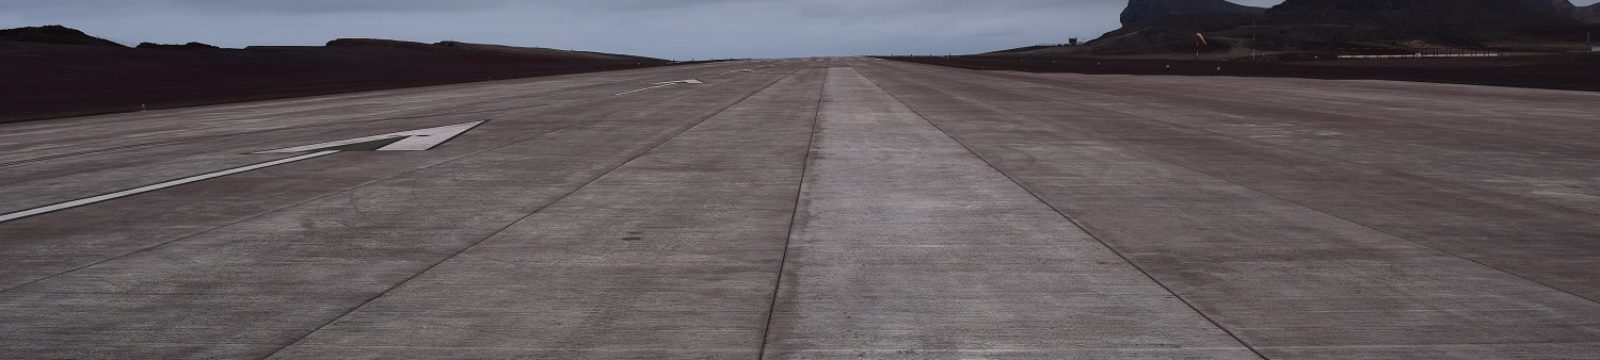 Photo of the runway looking in southern direction